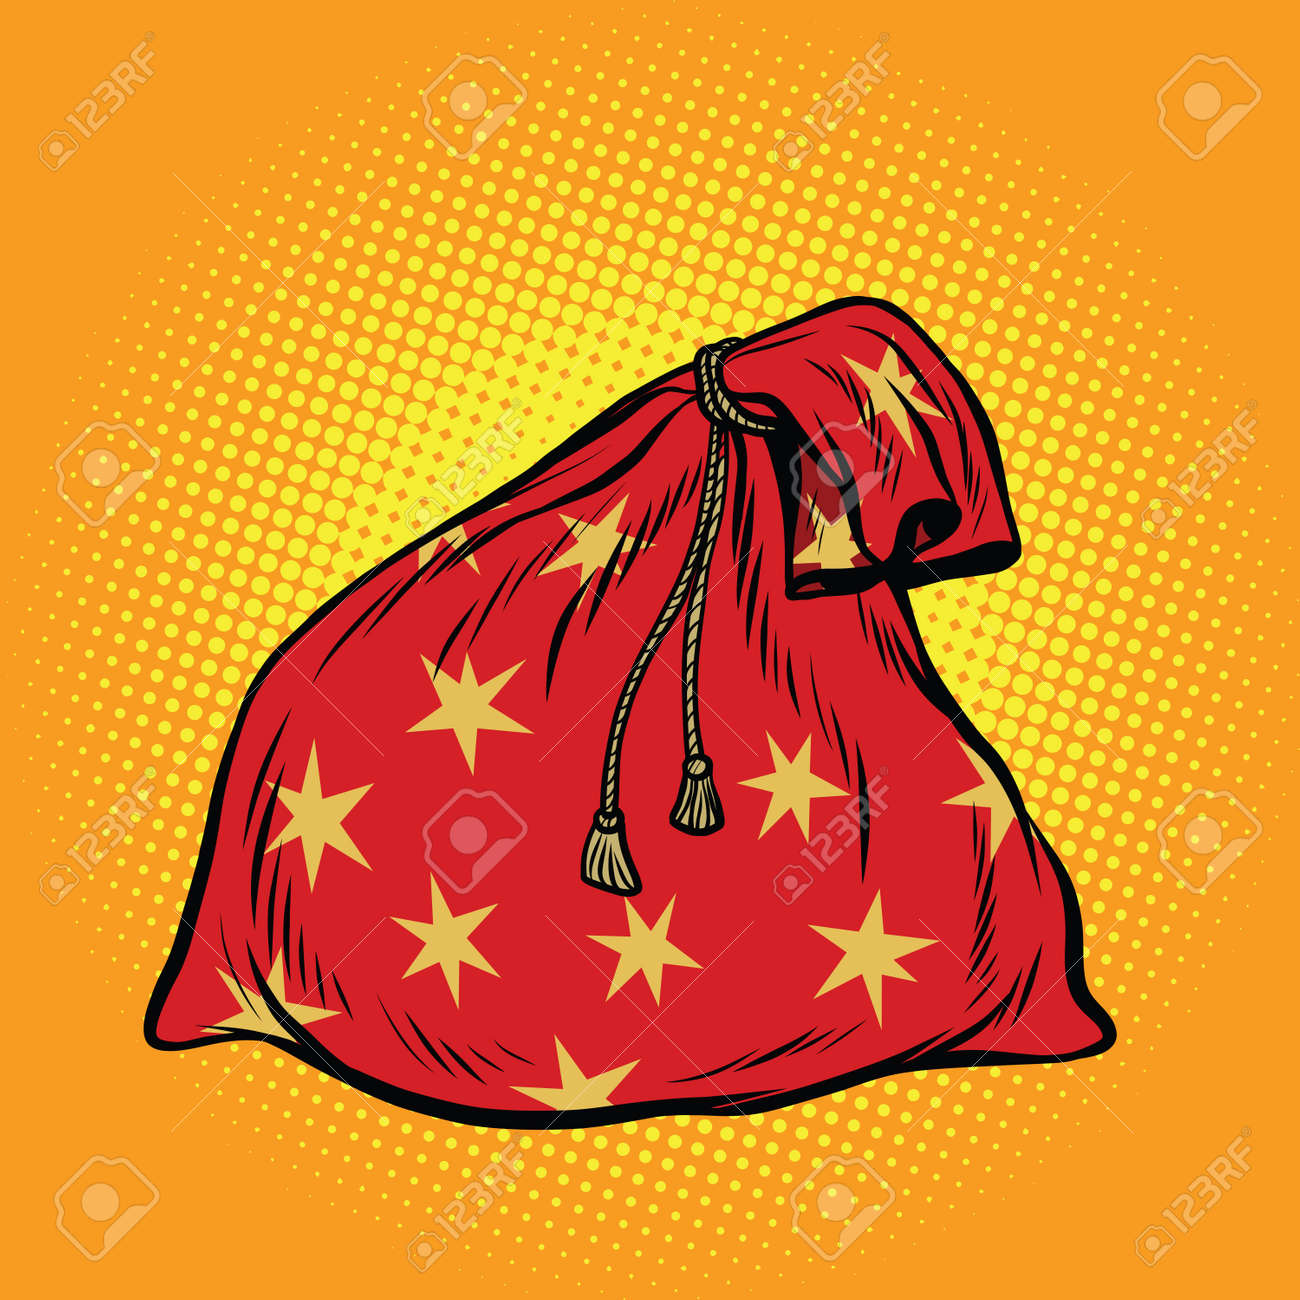 Christmas Gift Bag Santa Claus Pop Art Retro Vector Illustration Stock